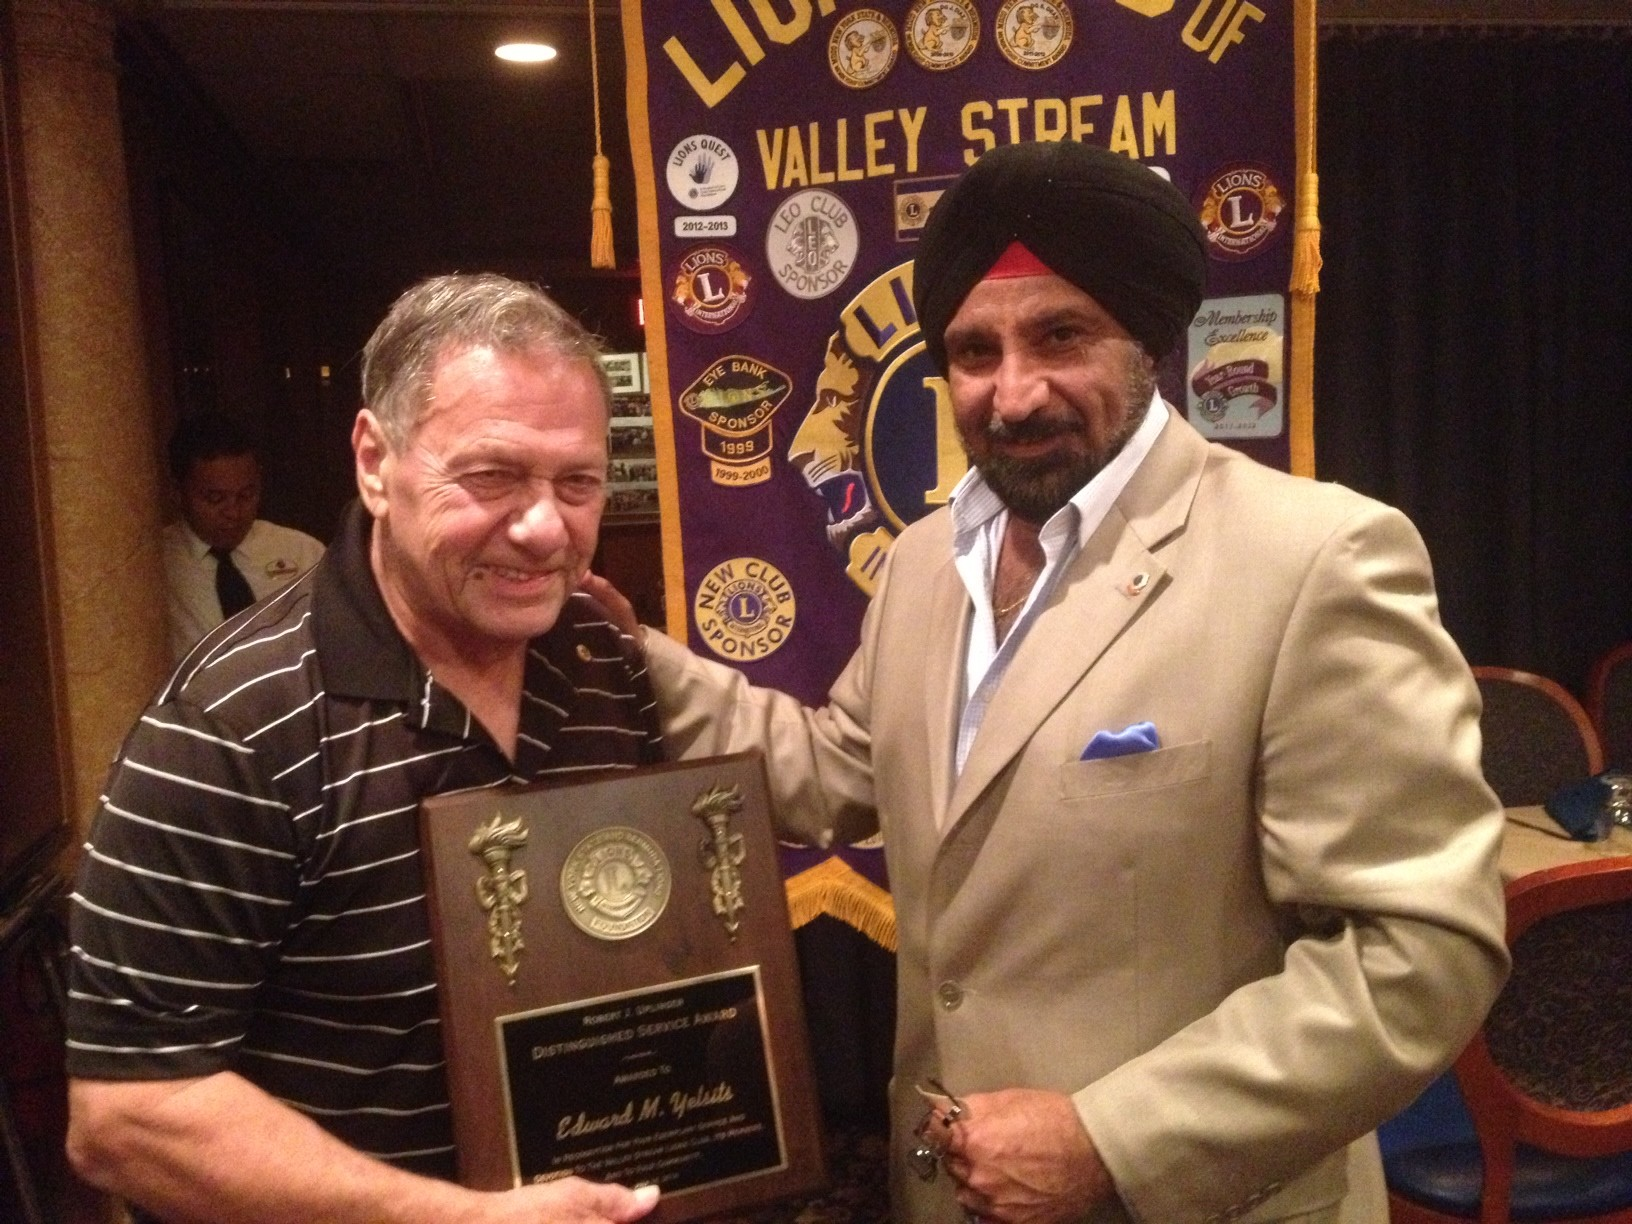 Edward Yelsits, left, receives the Robert J. Uplinger Award for exemplary service to the community from TJ Anand, the Lions Club's vice-district governor for the region.